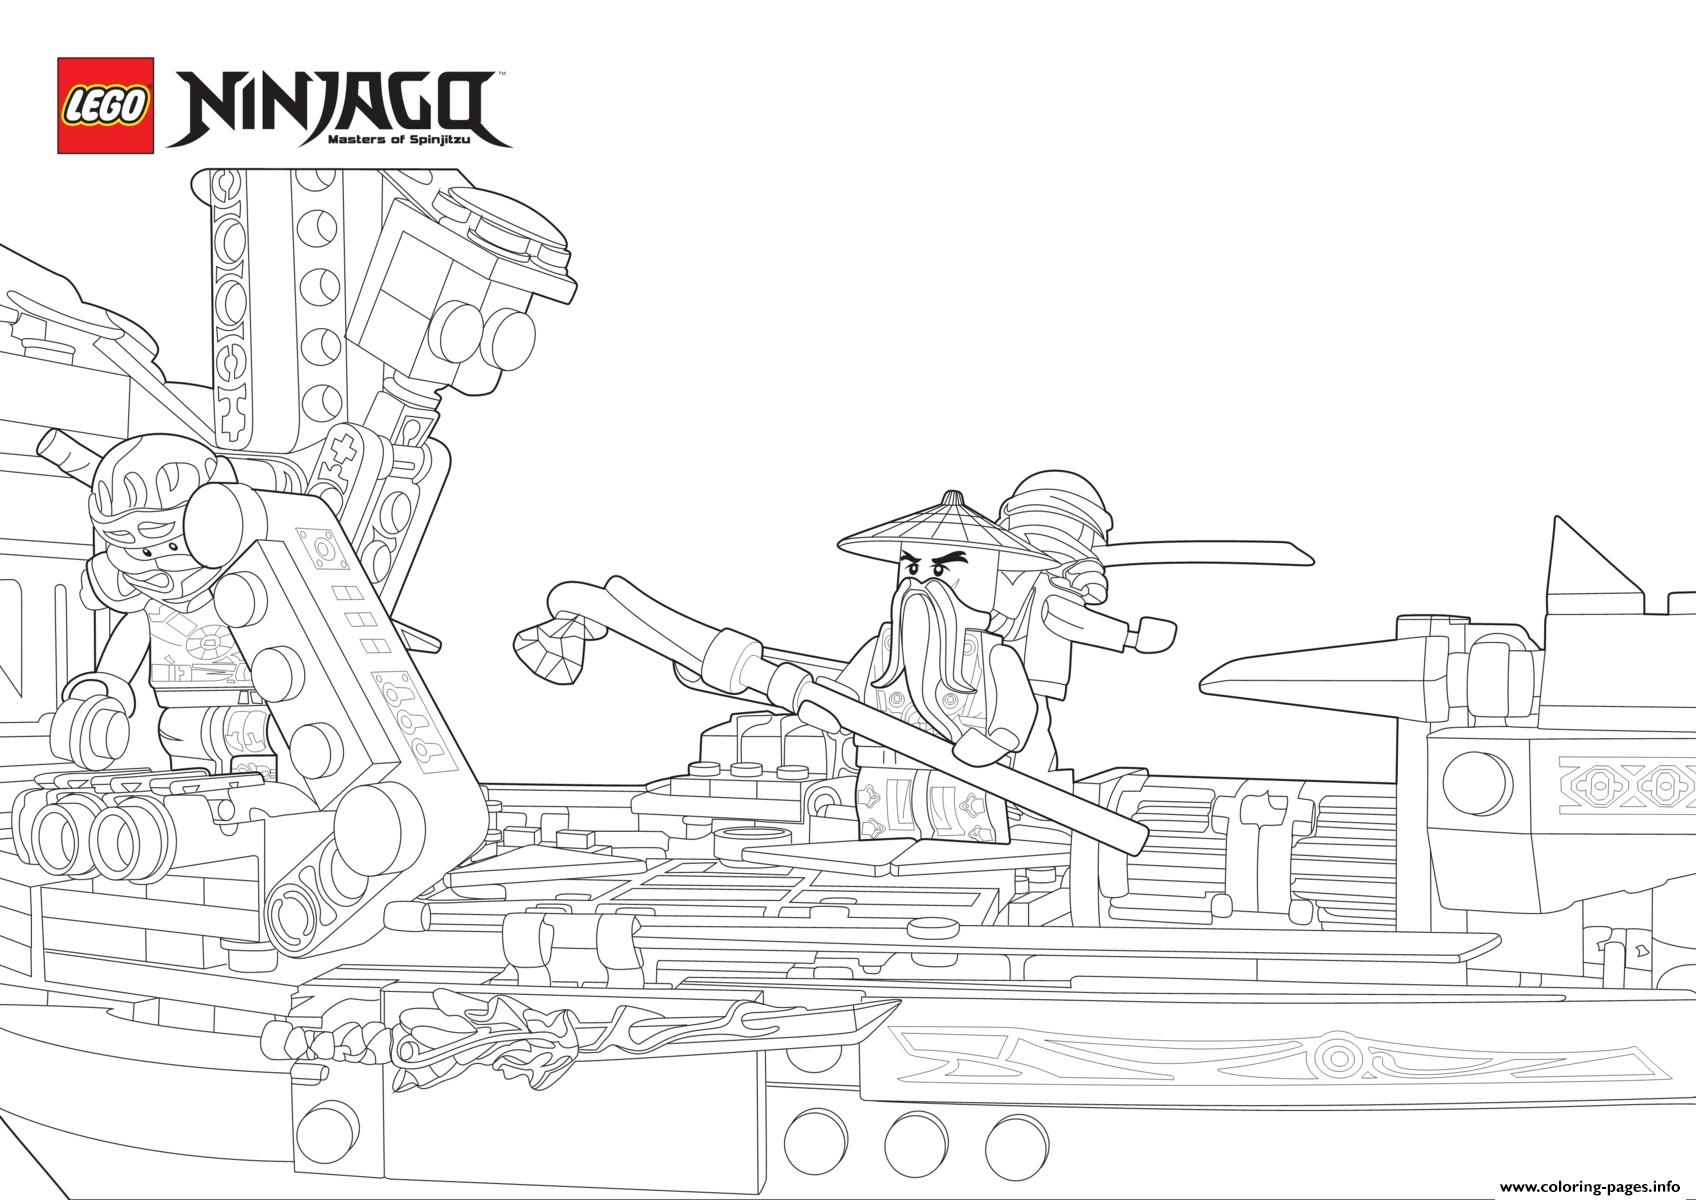 nindroid coloring pages coloring page with zane from the popular lego ninjago pages nindroid coloring